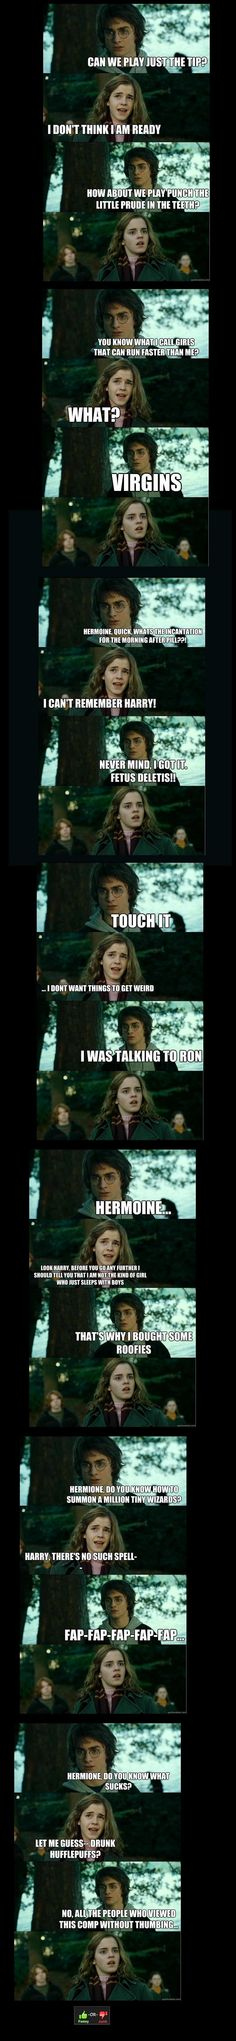 Harry Potter scenes captioned to death is funny as hell,,, with Hermione and Ron,,,